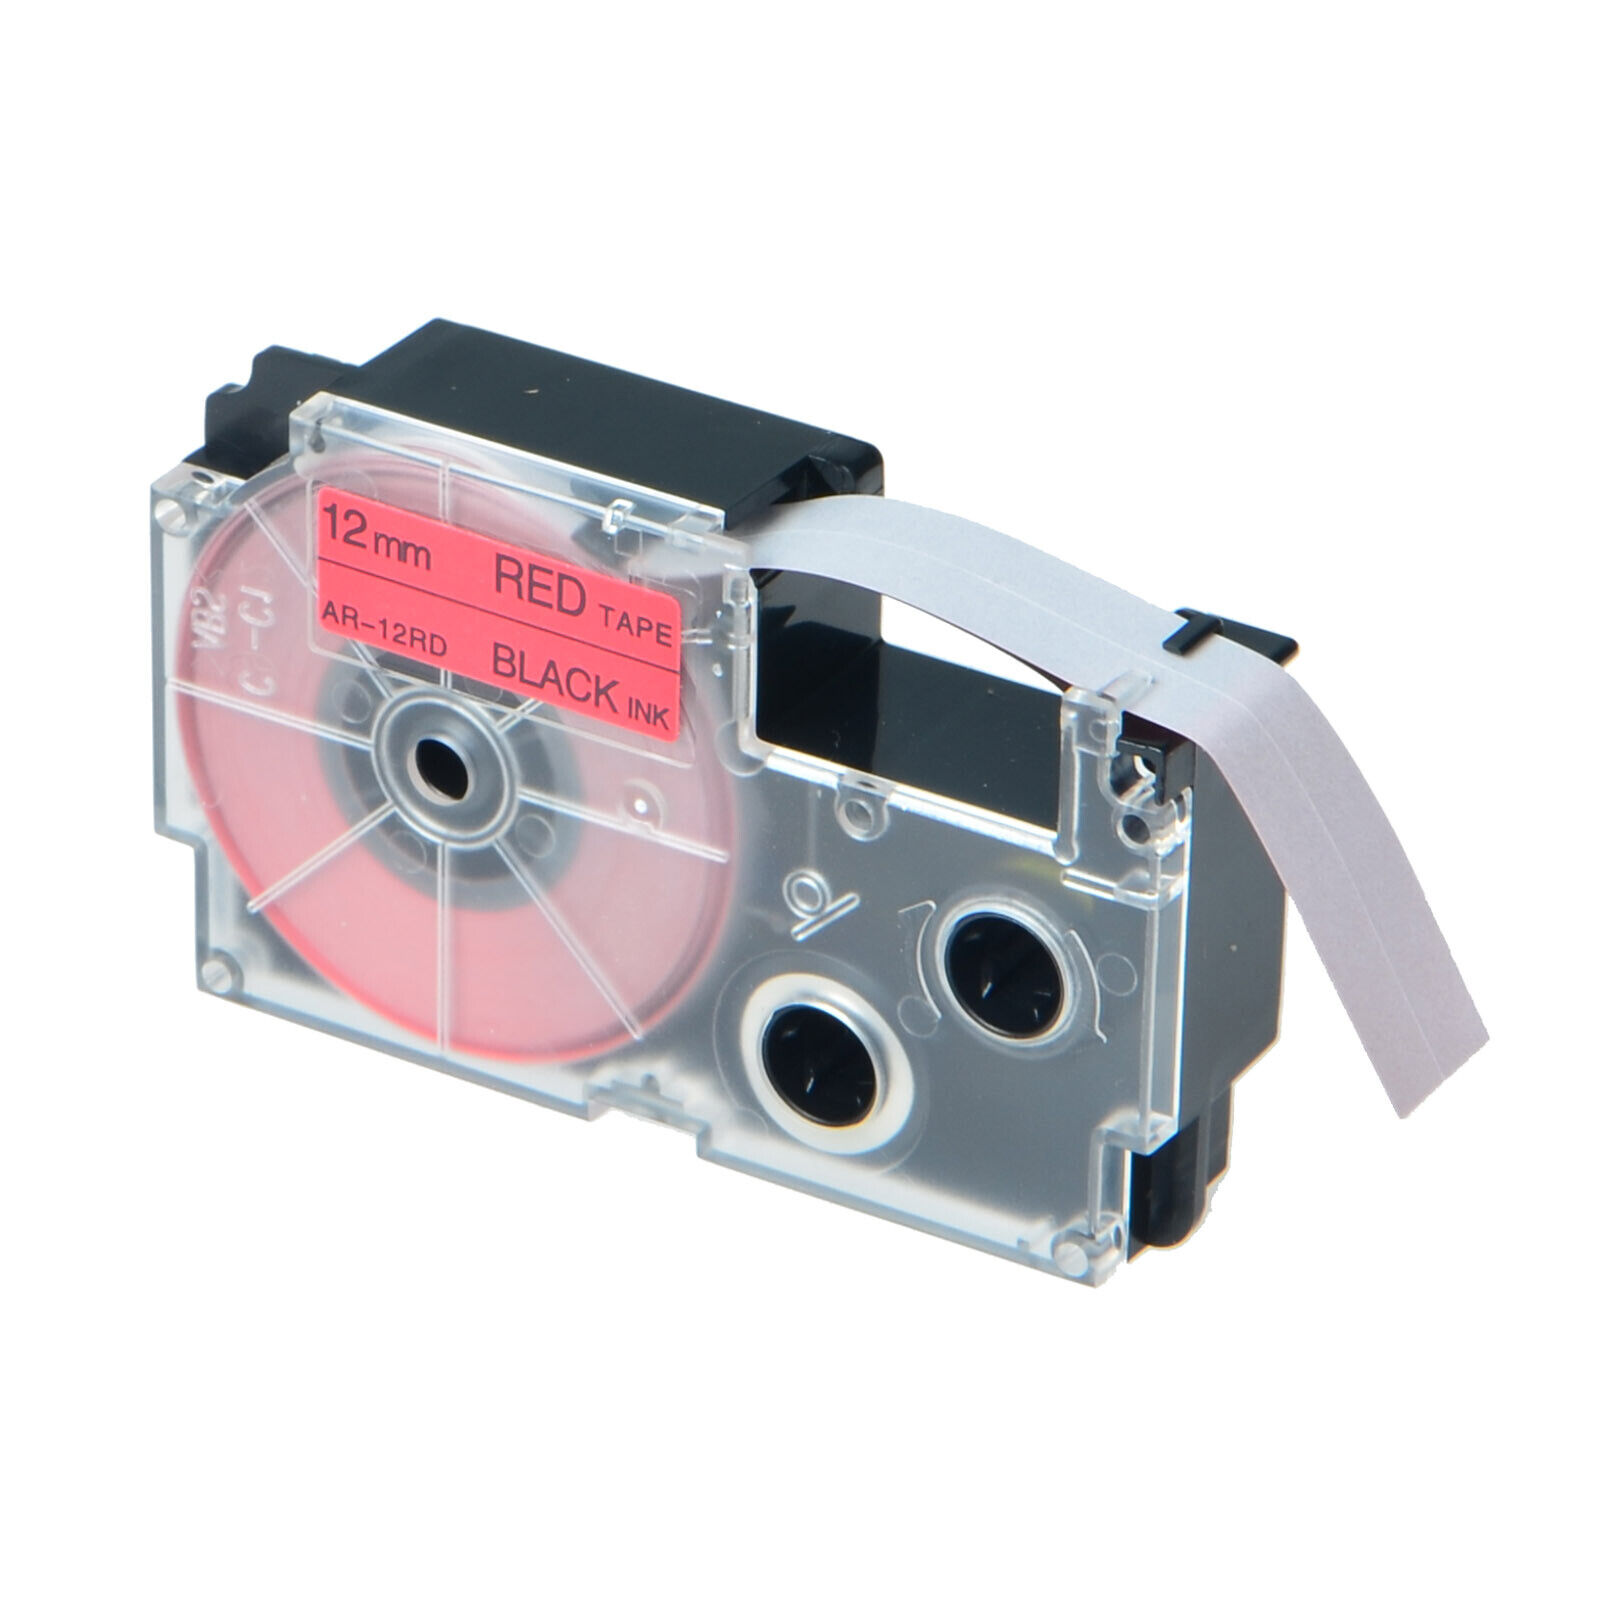 1PK XR-12RD Black On Red Label Tape For Casio KL-780 750B